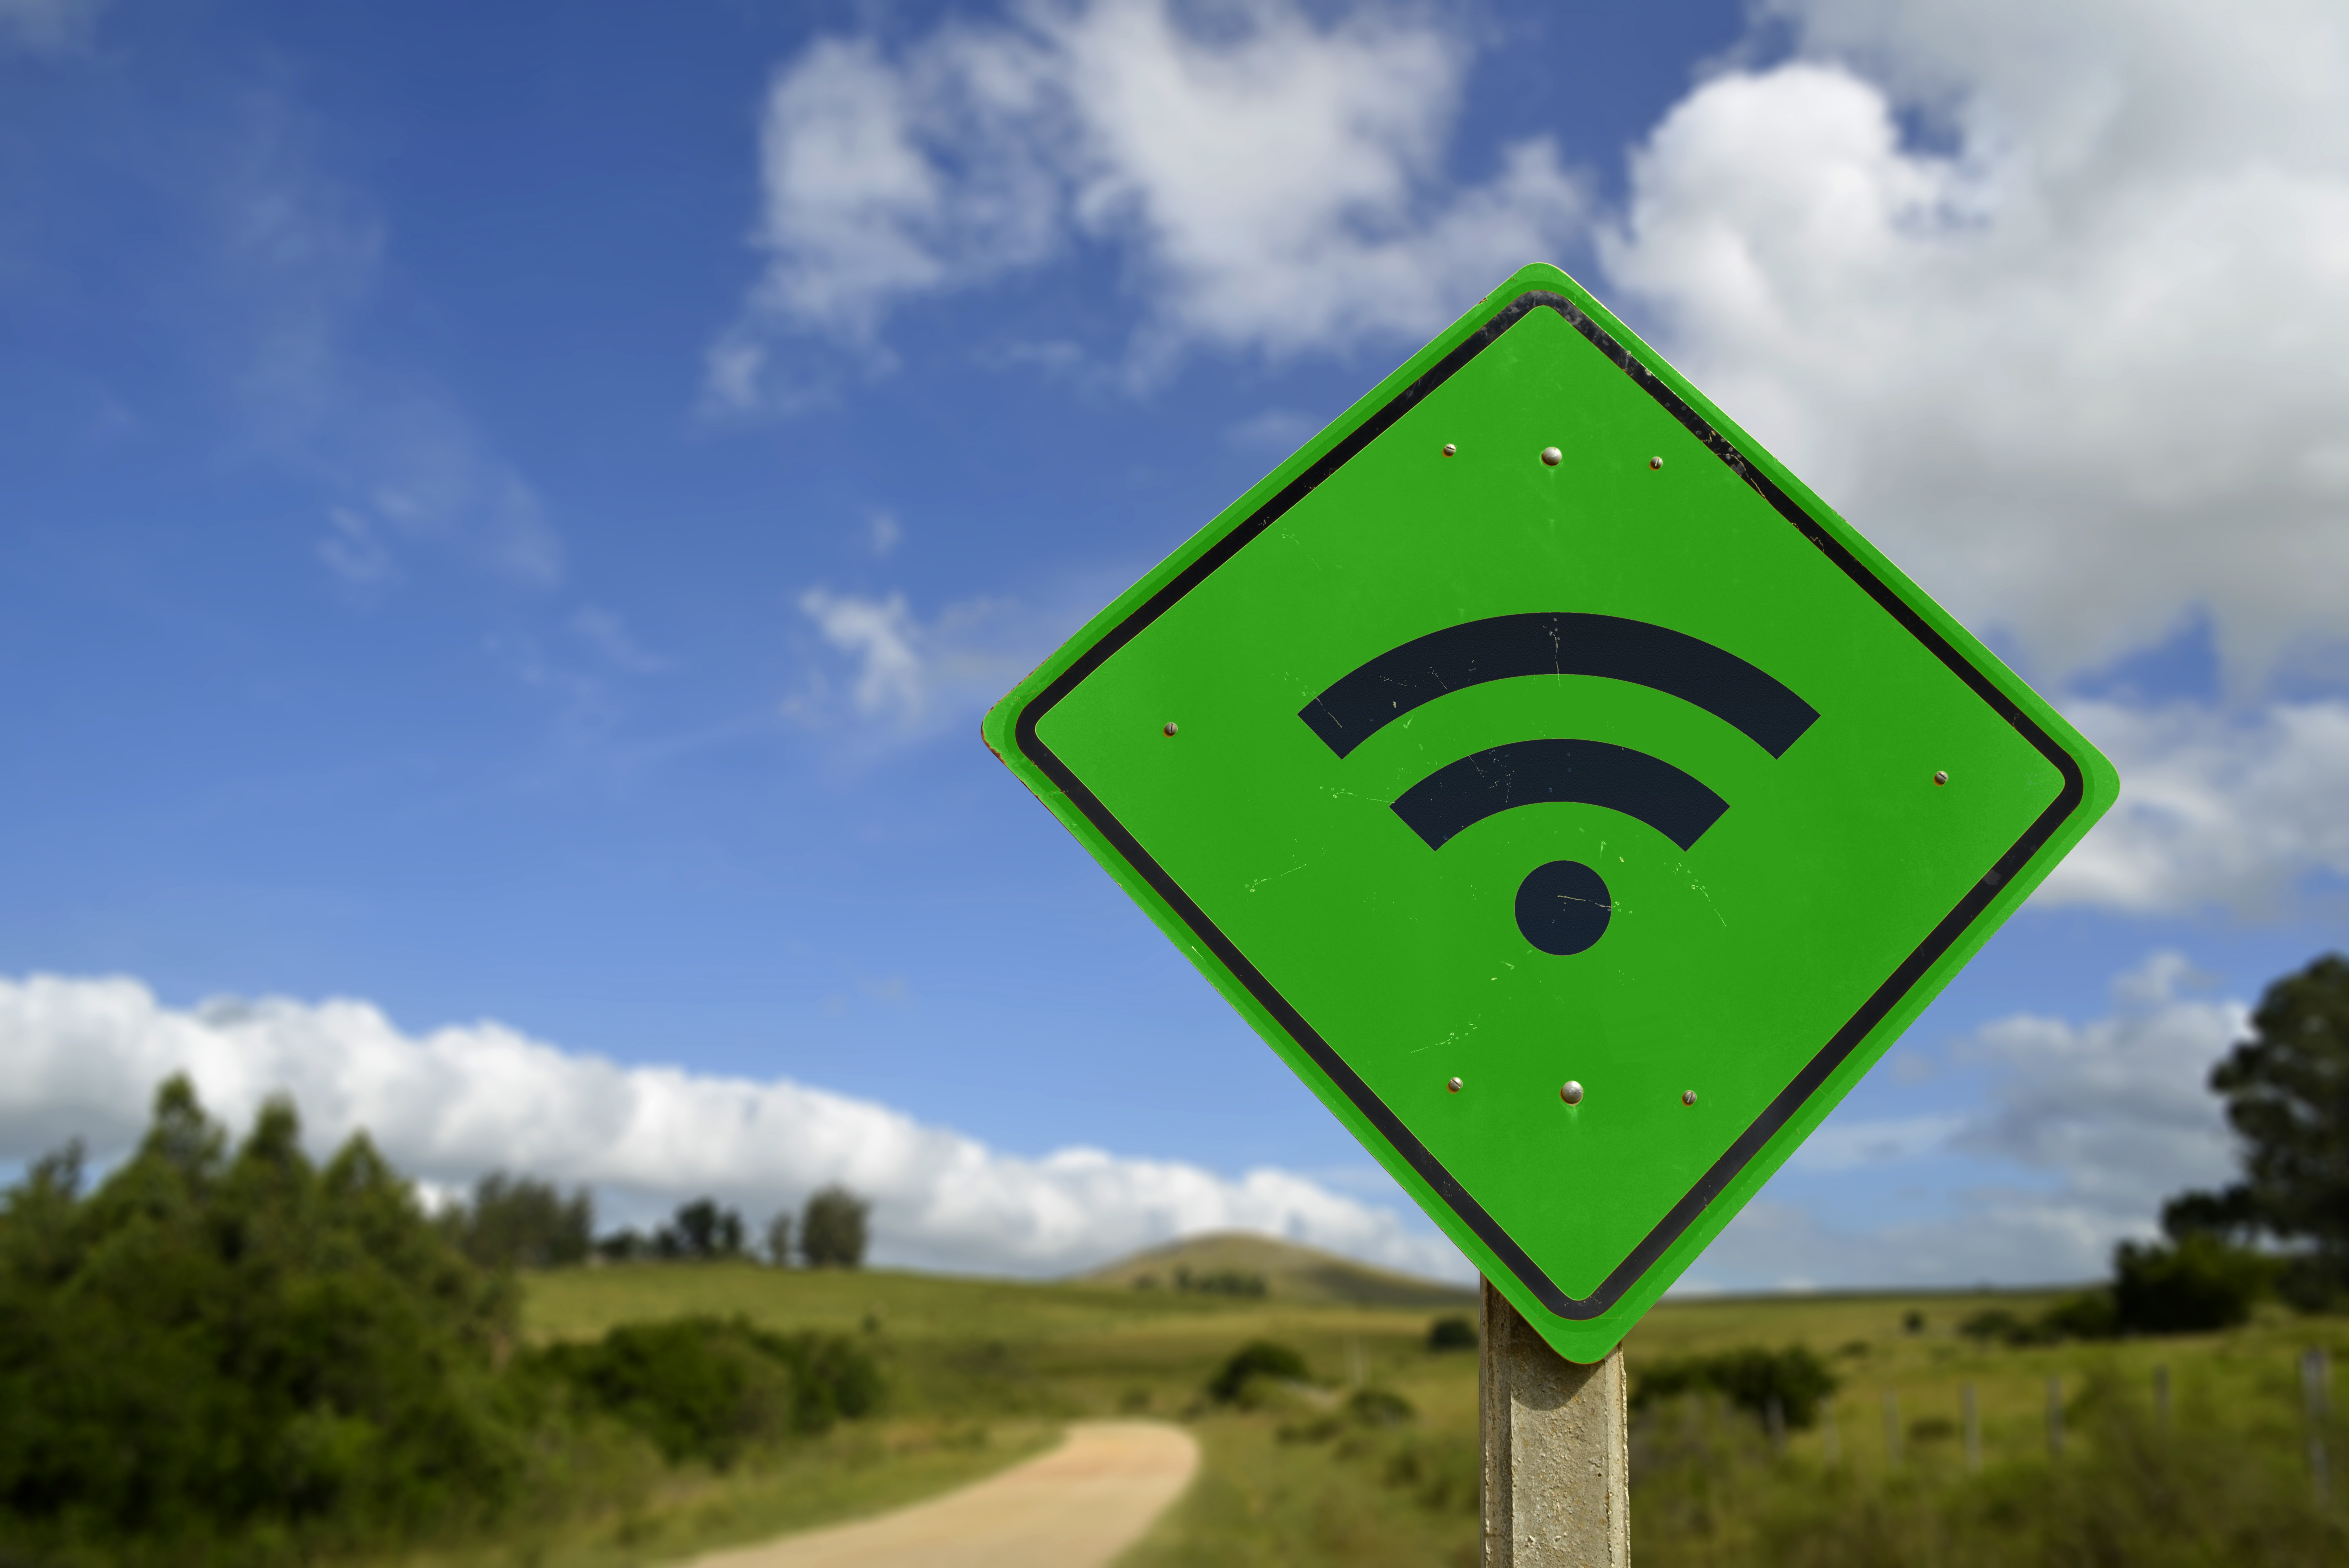 Green Wifi access road sign concept in rural area-1